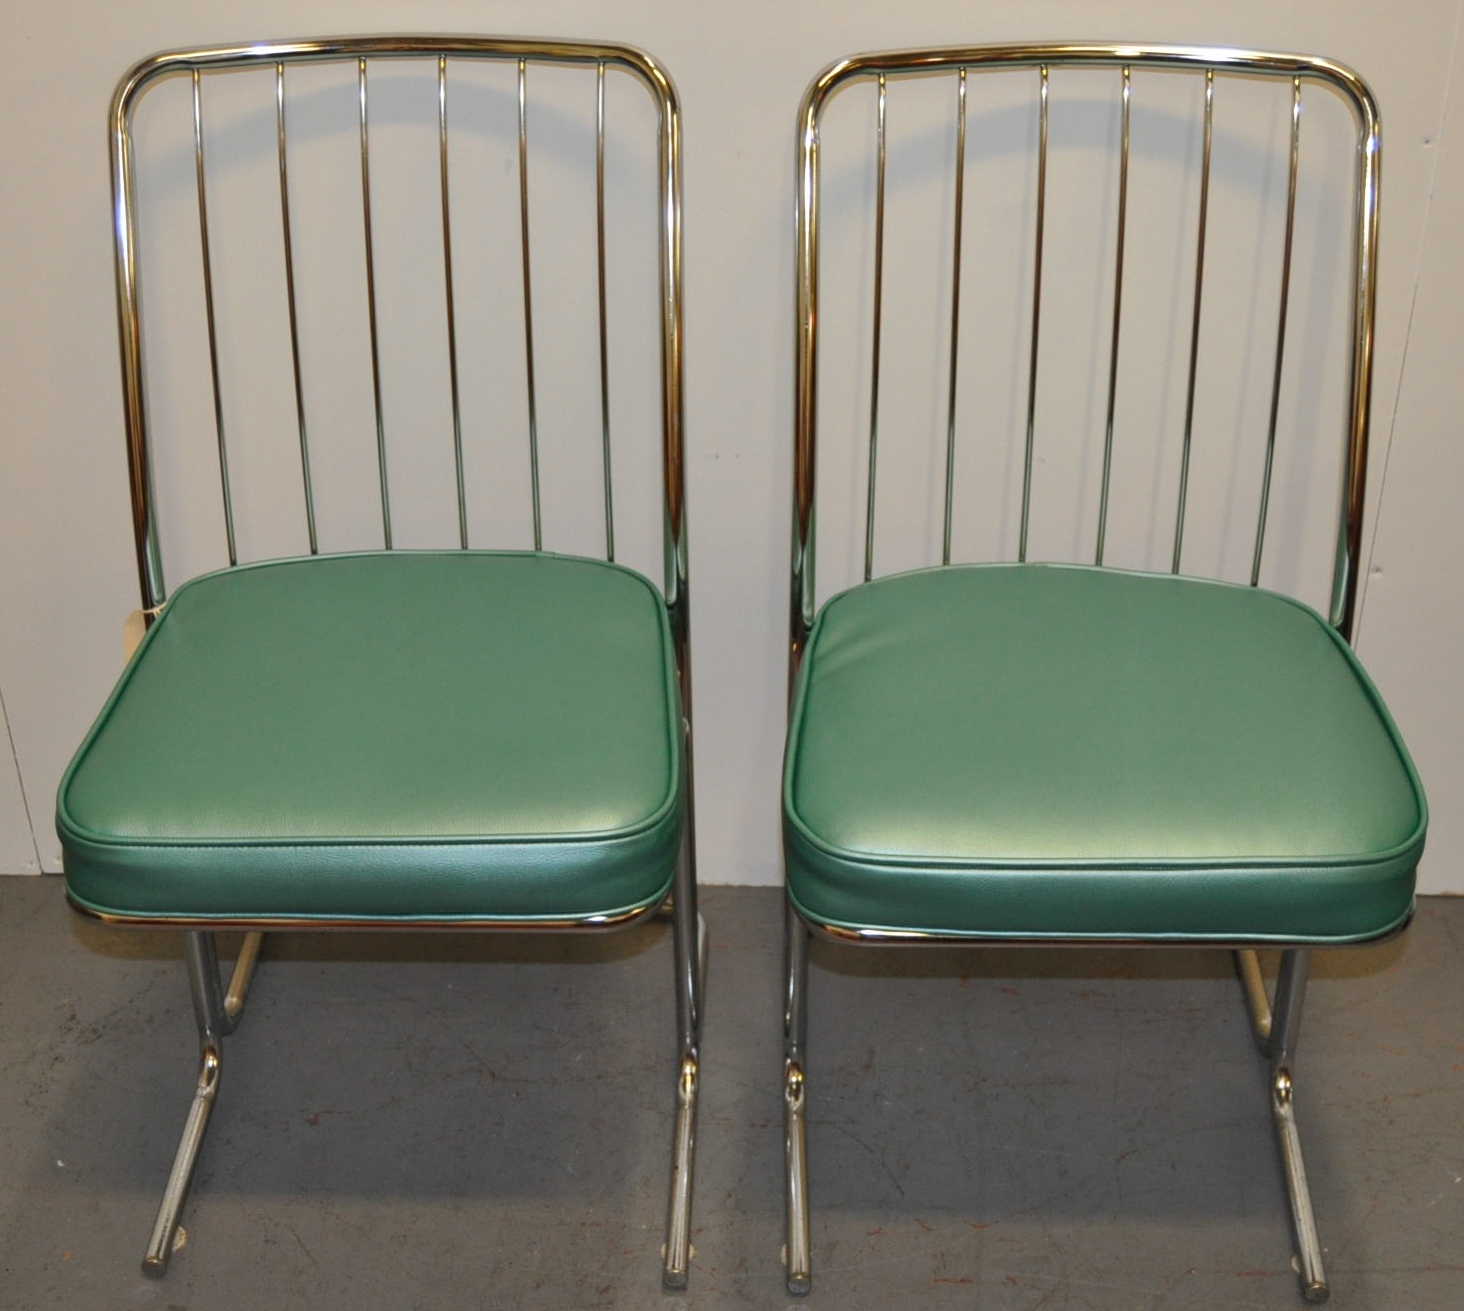 1950s Chrome & Vinyl Kitchen Chairs  Set Of Four  Chairish. Living Room Carpet Designs. Interior Design Living Room Ideas Contemporary. Beds For Living Room. Entertainment Centers For Living Rooms. Ideas For My Living Room. Home Office Living Room Design Ideas. Tuscan Style Furniture Living Rooms. Living Room Furniture Arrangement With Corner Fireplace